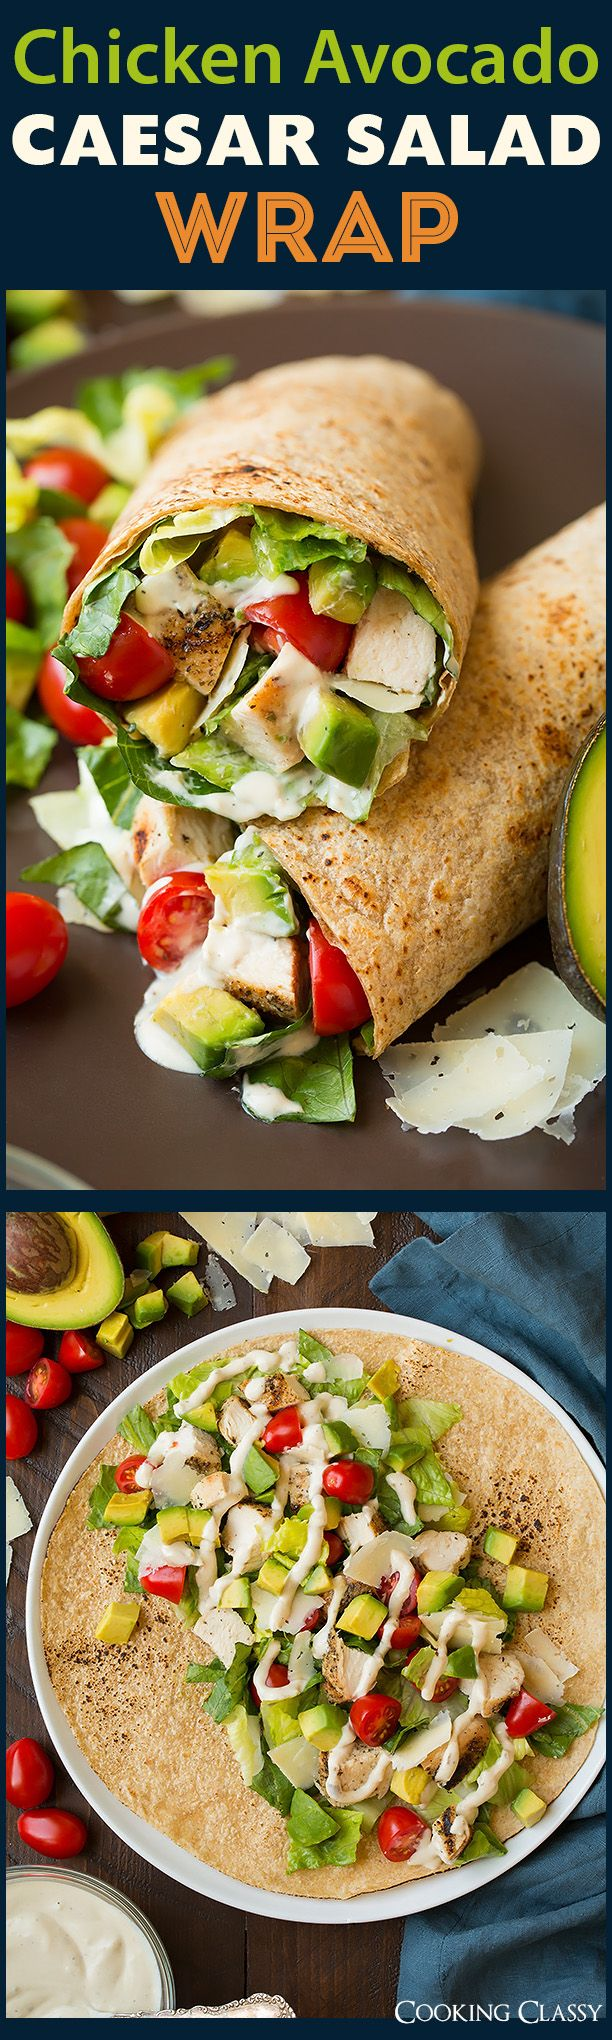 Chicken Avocado Caesar Salad Wrap - Cooking Classy